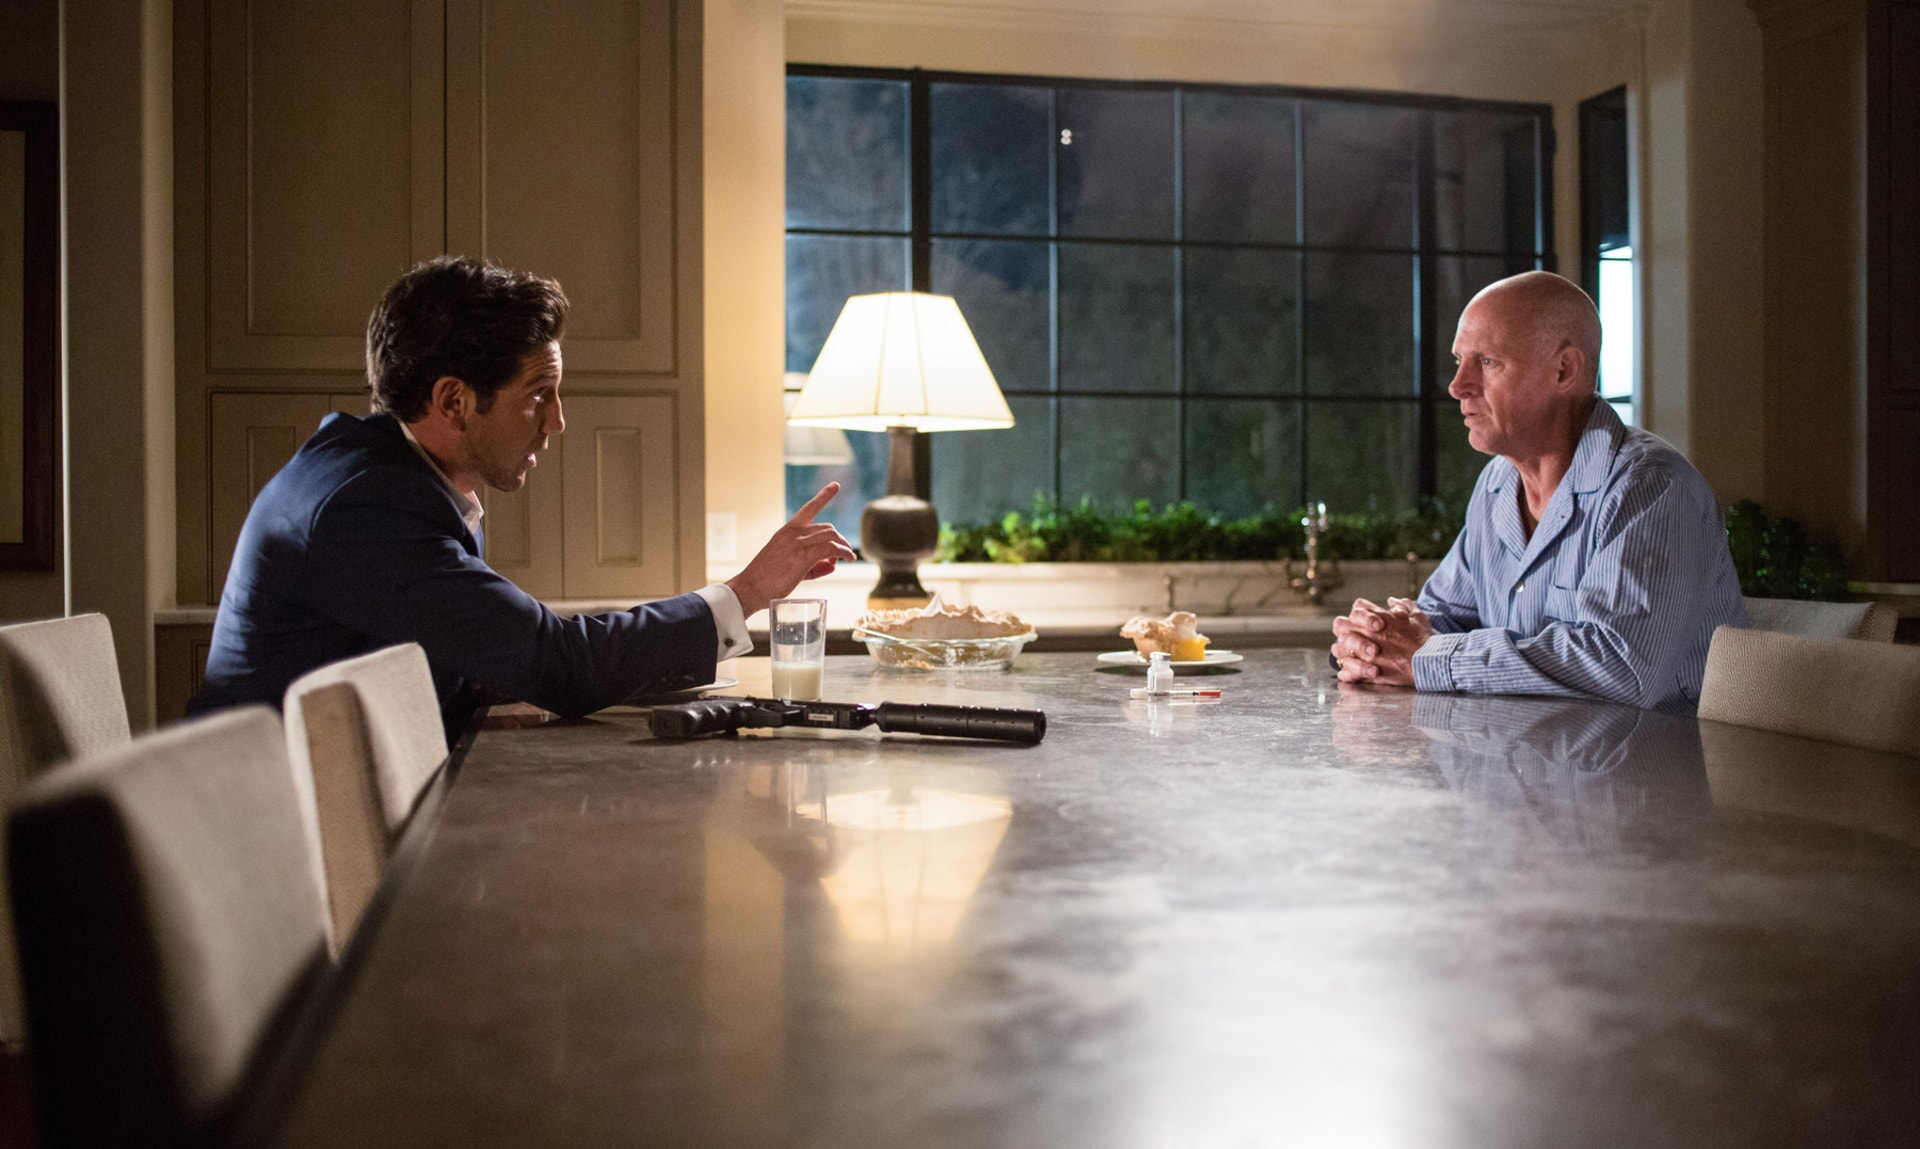 """JON BERNTHAL as Brax and ANDY UMBERGER as Ed Chilton in Warner Bros. Pictures' """"THE ACCOUNTANT,"""" a Warner Bros. Pictures release."""